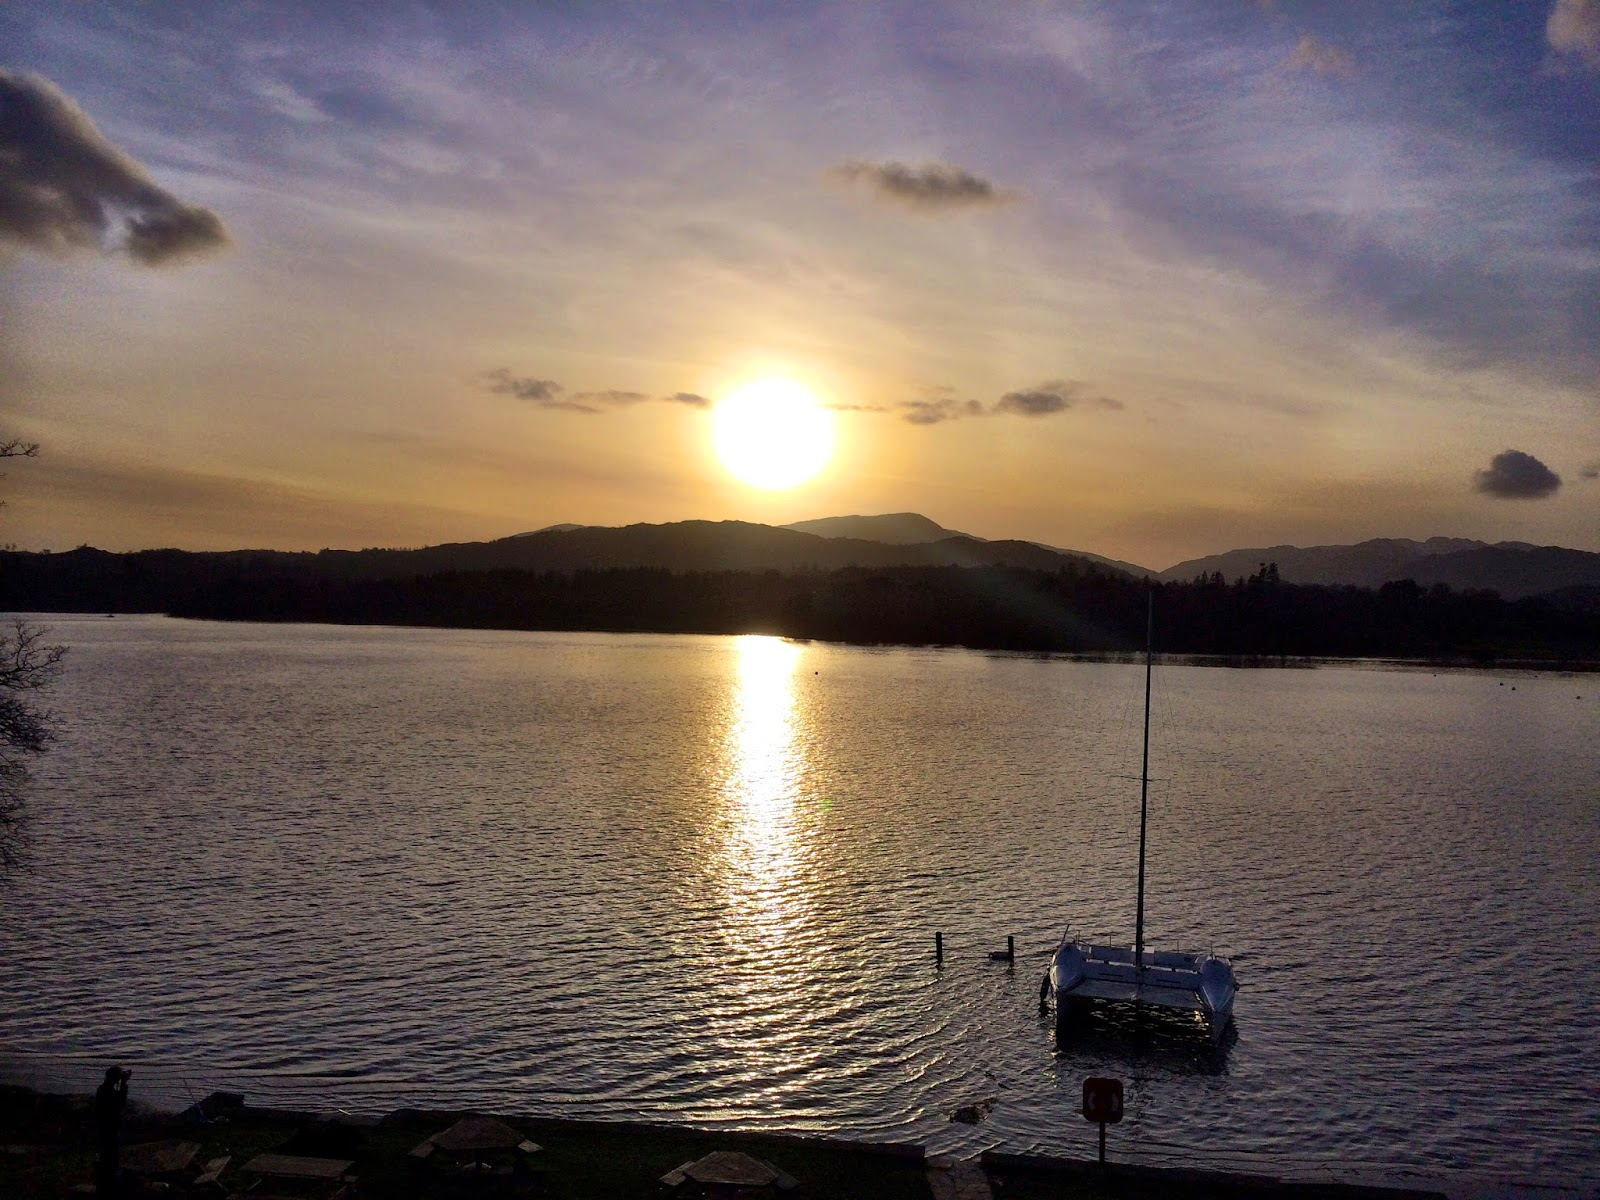 Sunset over Windermere from Ambleside - March 2014